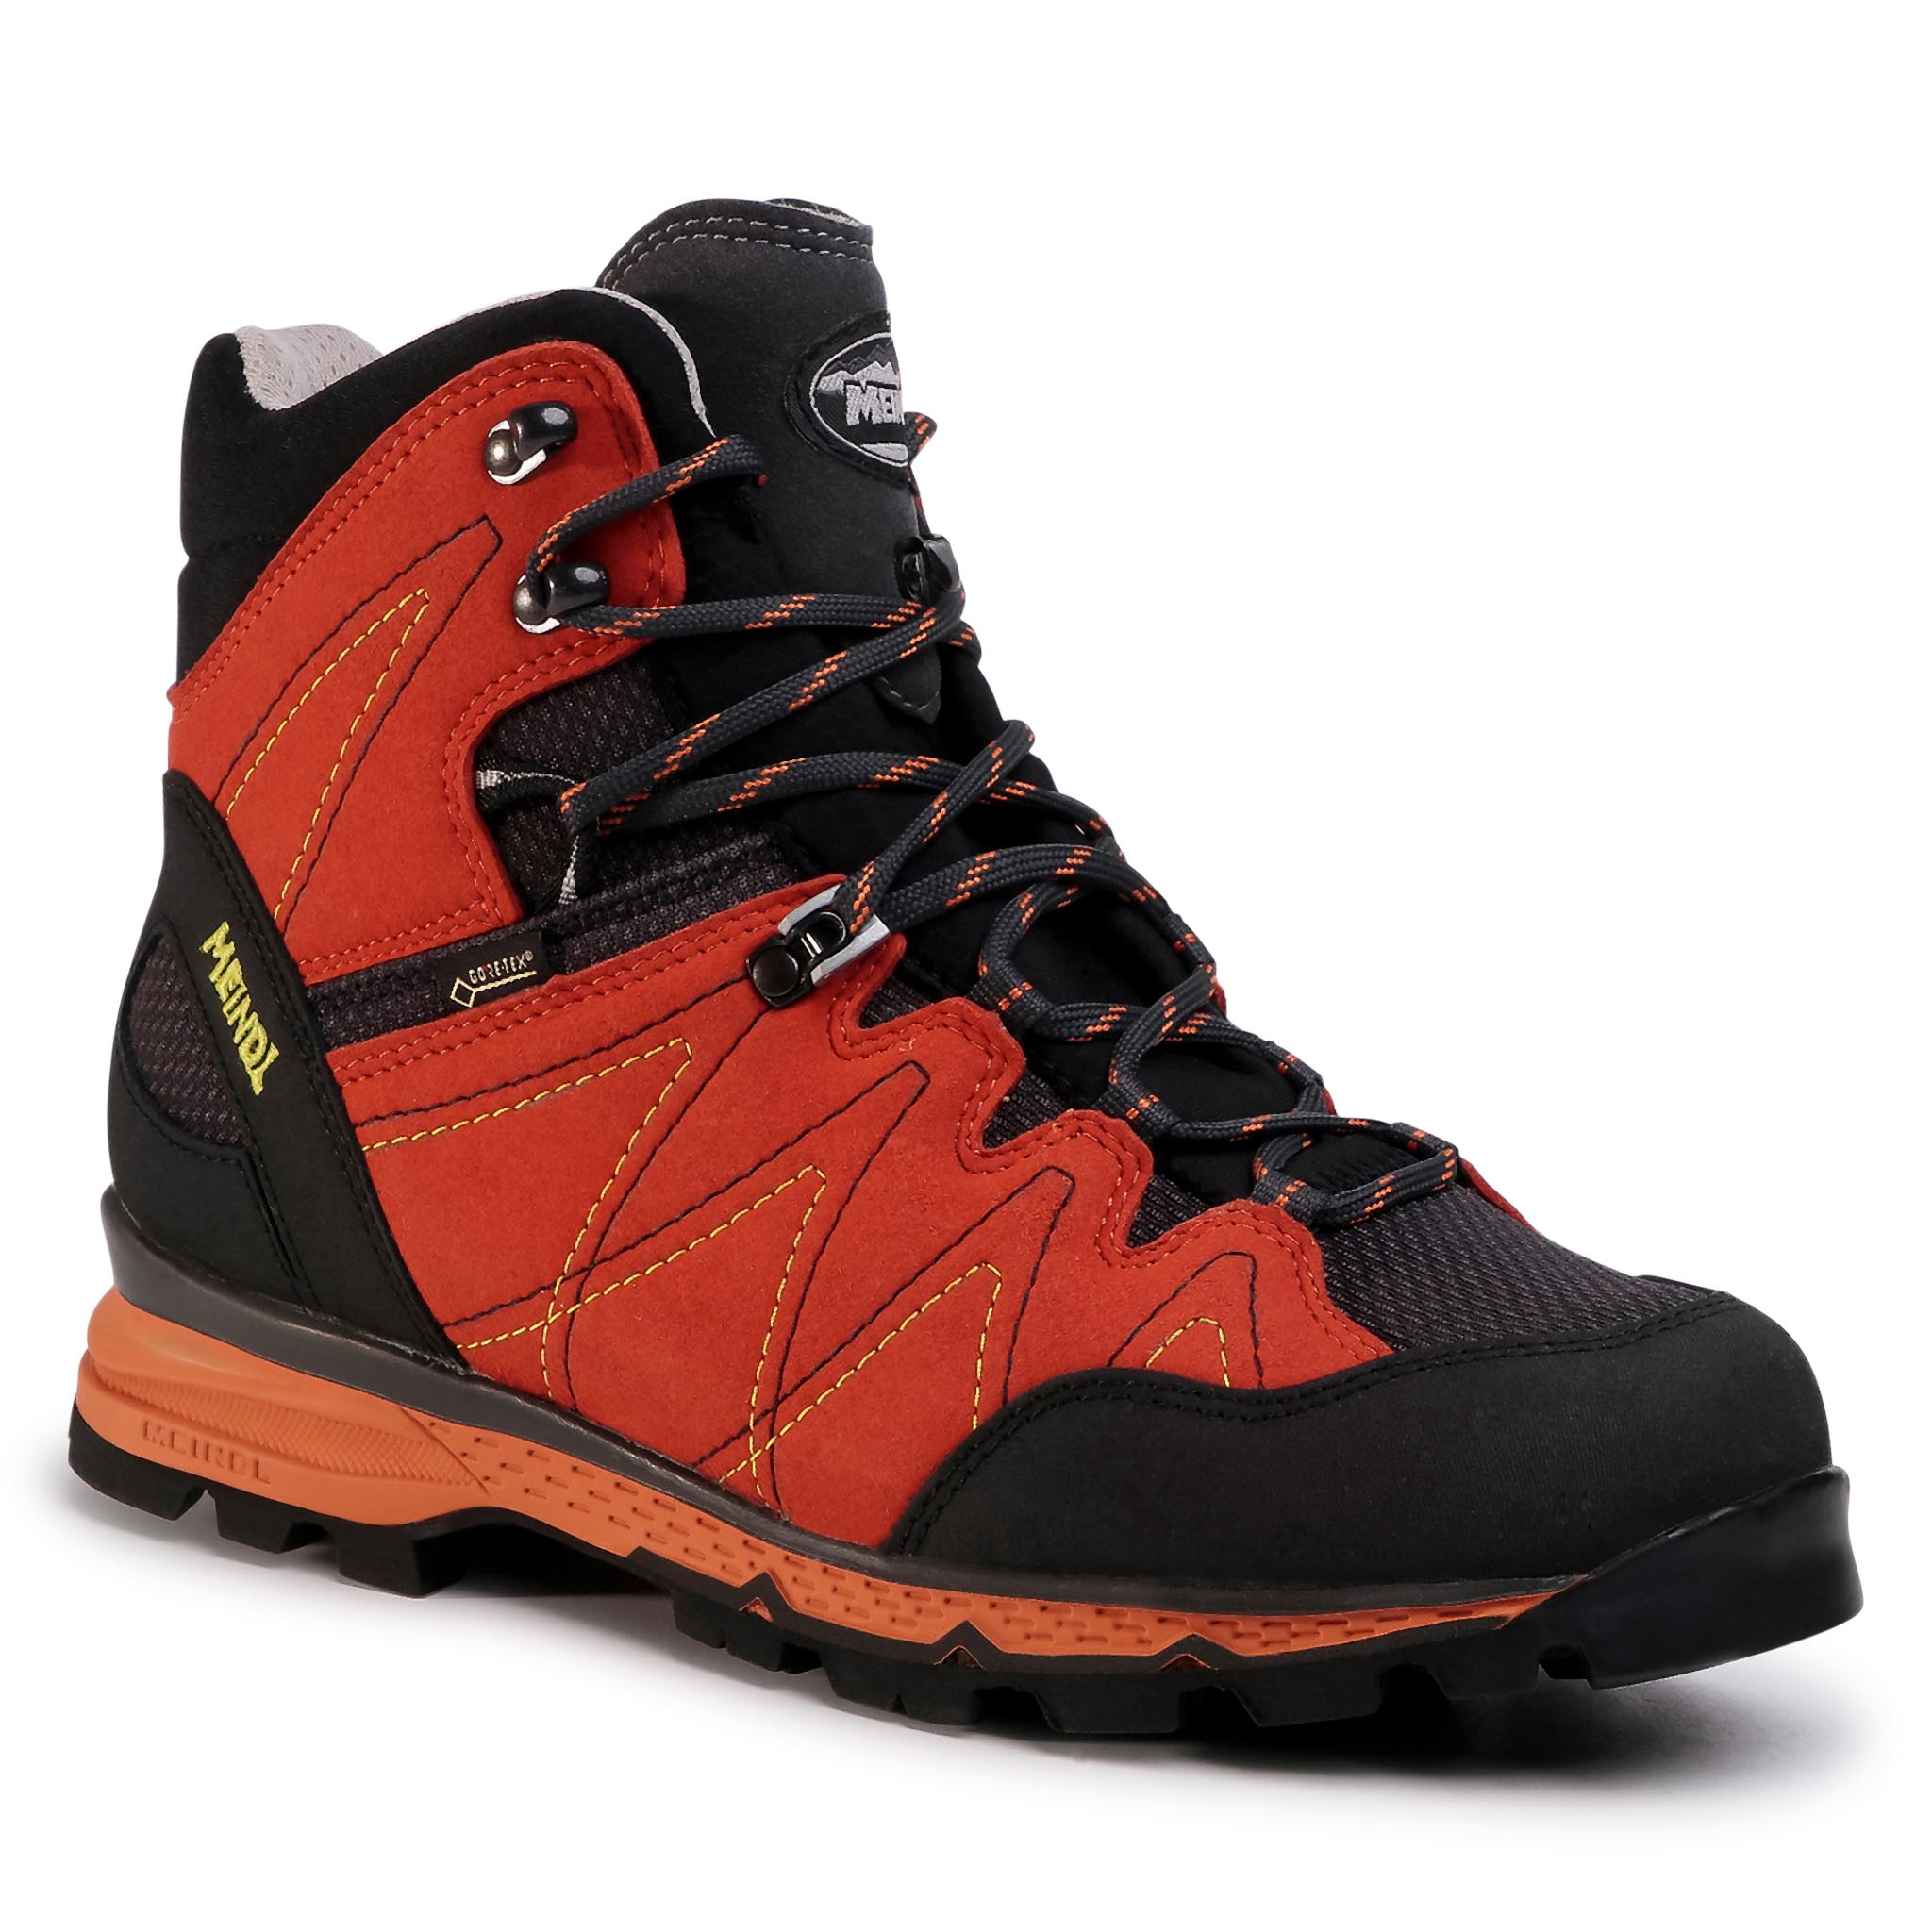 Trekkings Meindl - Montalin Gtx (R) Gore-Tex 2714 Orange 76 imagine epantofi.ro 2021